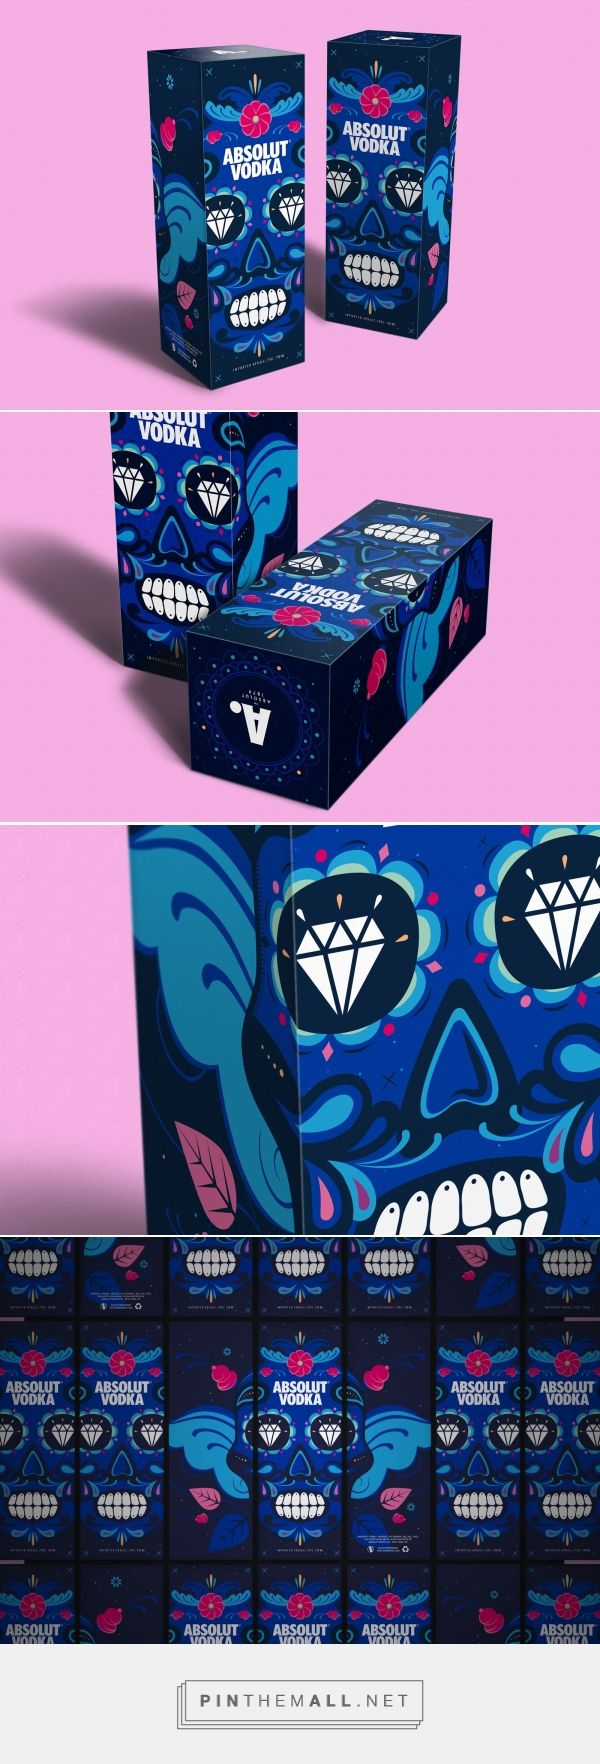 Absolut Vodka Dias De Los Muertos gift pack design by Sunny at Sea - http://www.packagingoftheworld.com/2017/11/absolut-vodka-dias-de-los-muertos.html